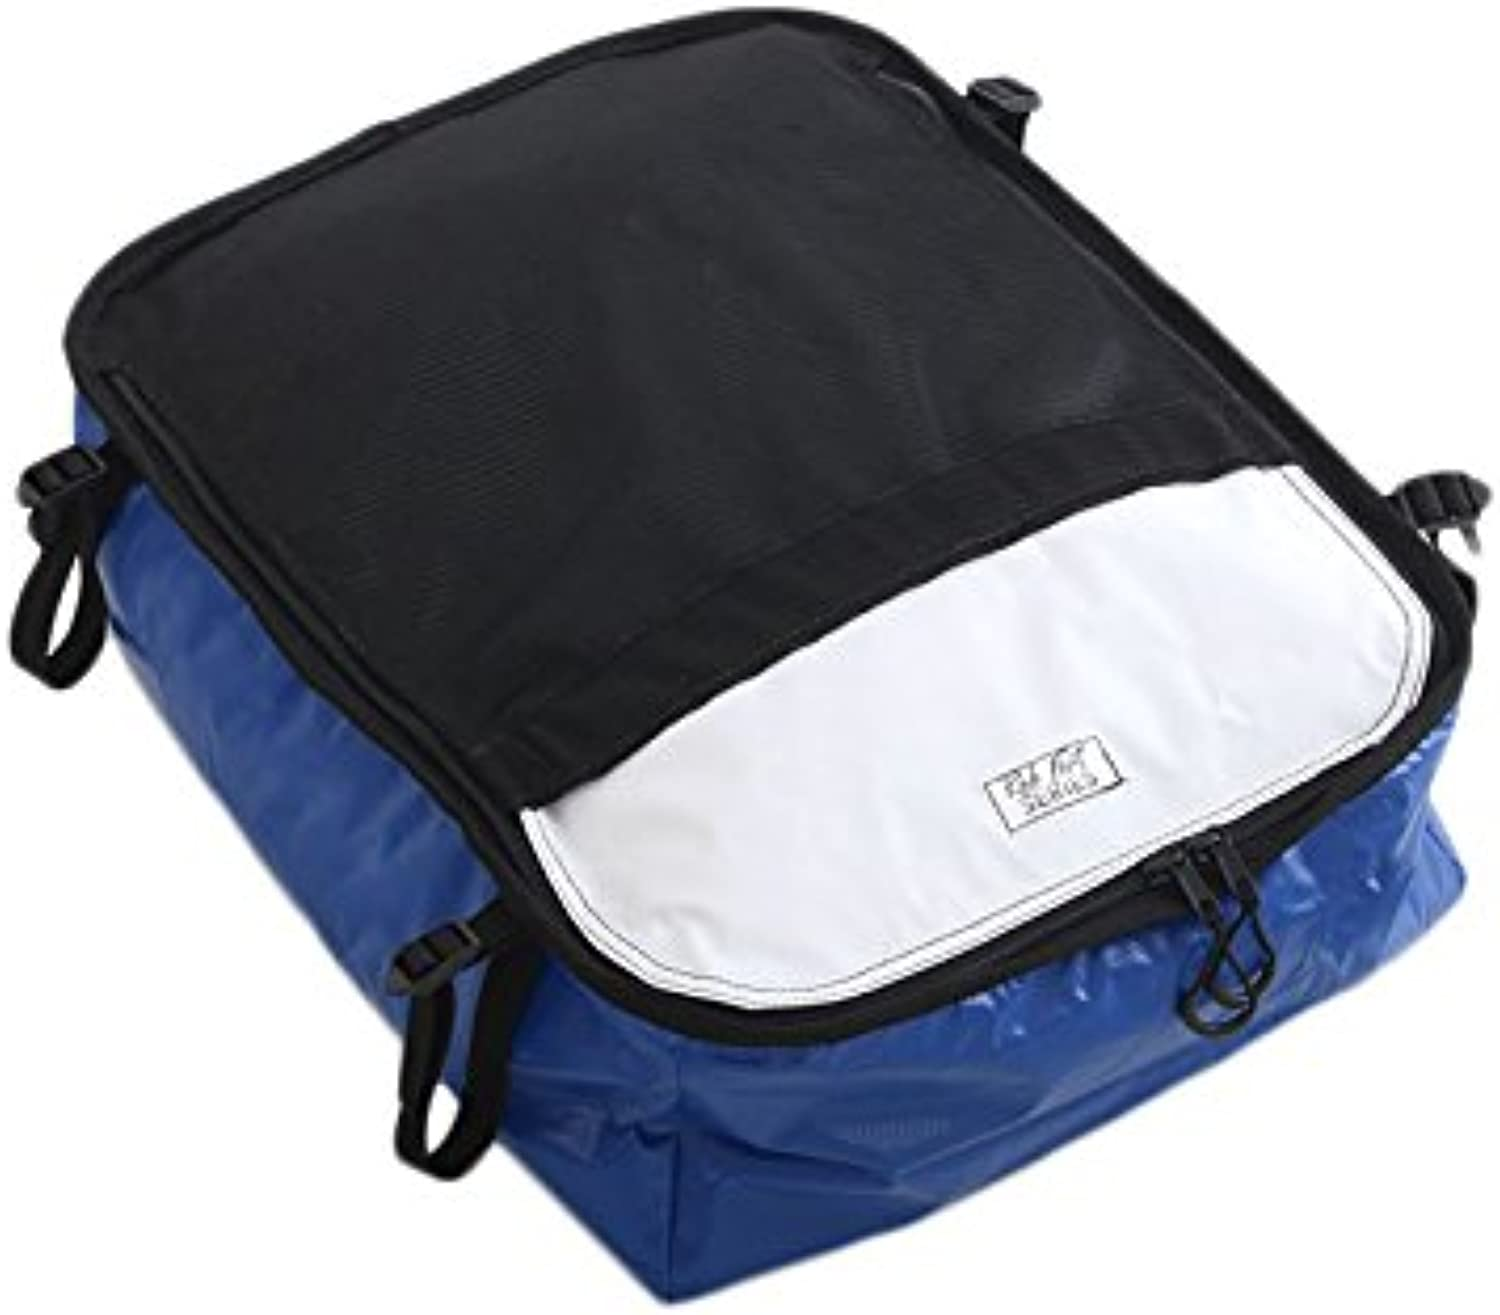 Rob Fort Insulated Kayak Cooler Catch Bag 52 x 38 x 18cm